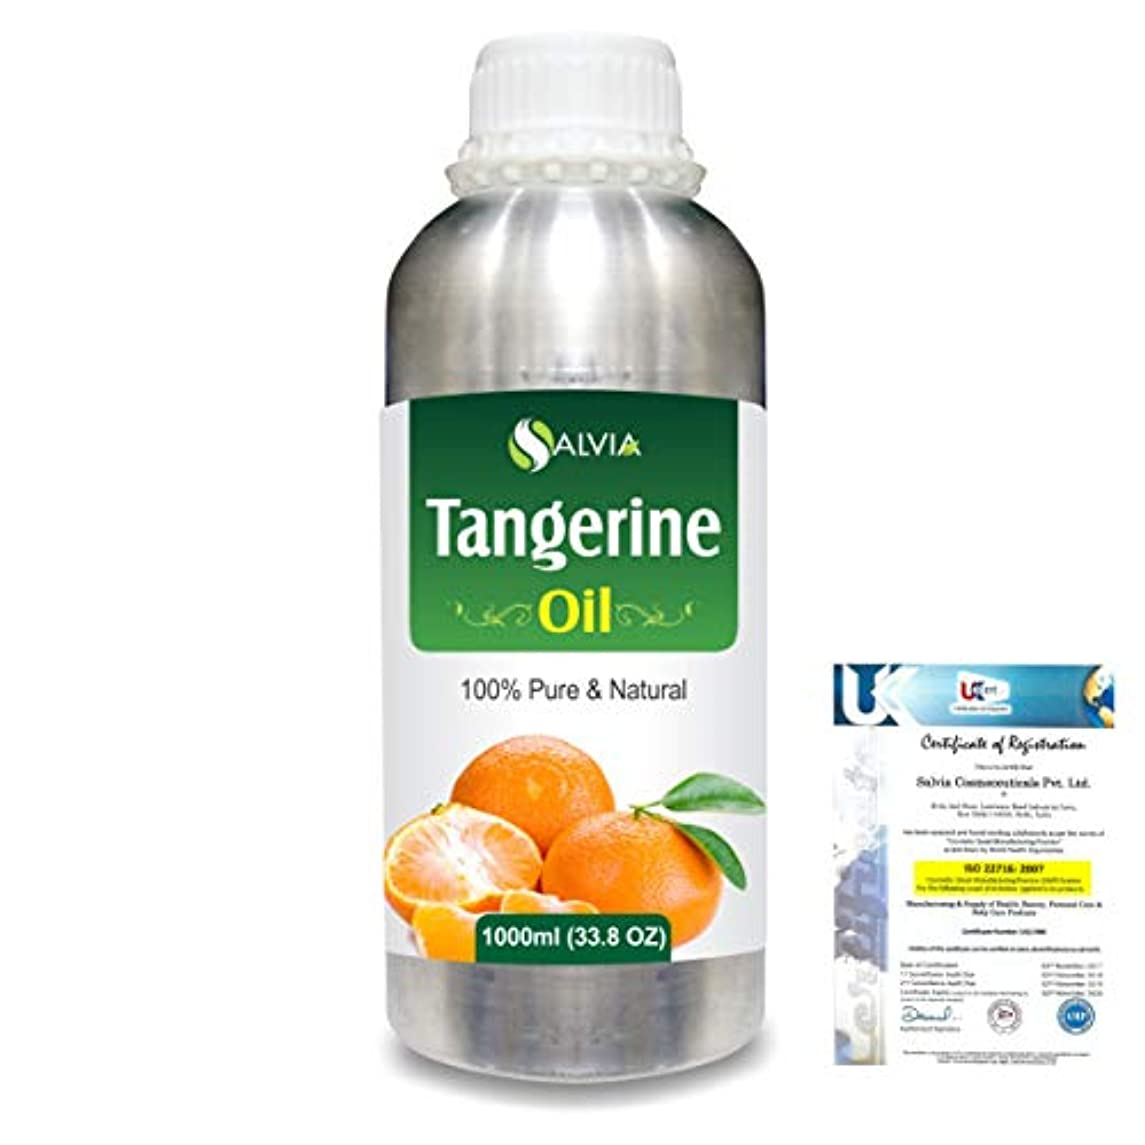 リー洪水スロベニアTangerine (Citrus nobilis) 100% Natural Pure Essential Oil 1000ml/33.8fl.oz.